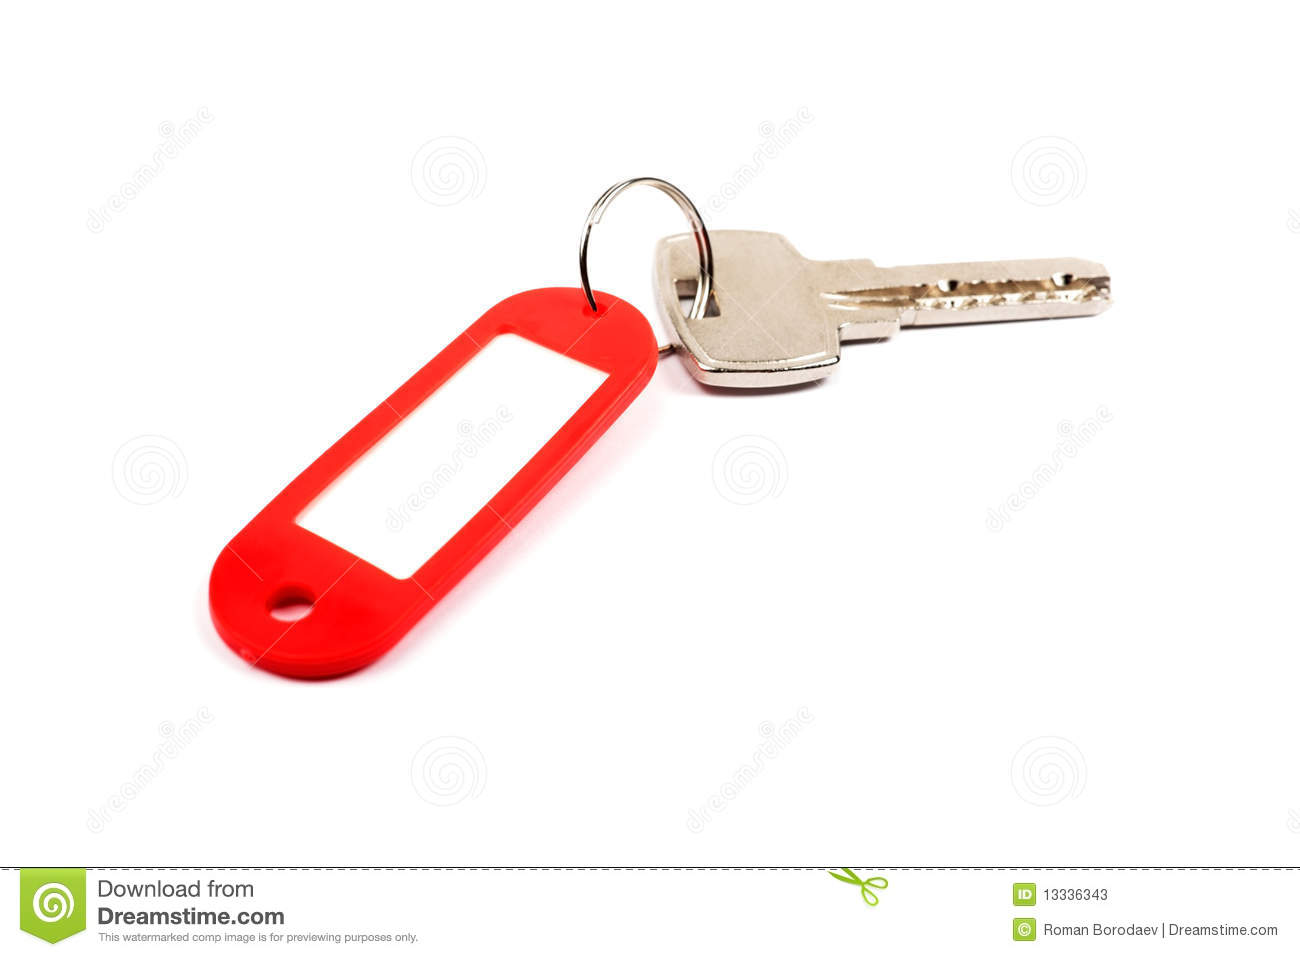 Key and red trinket.